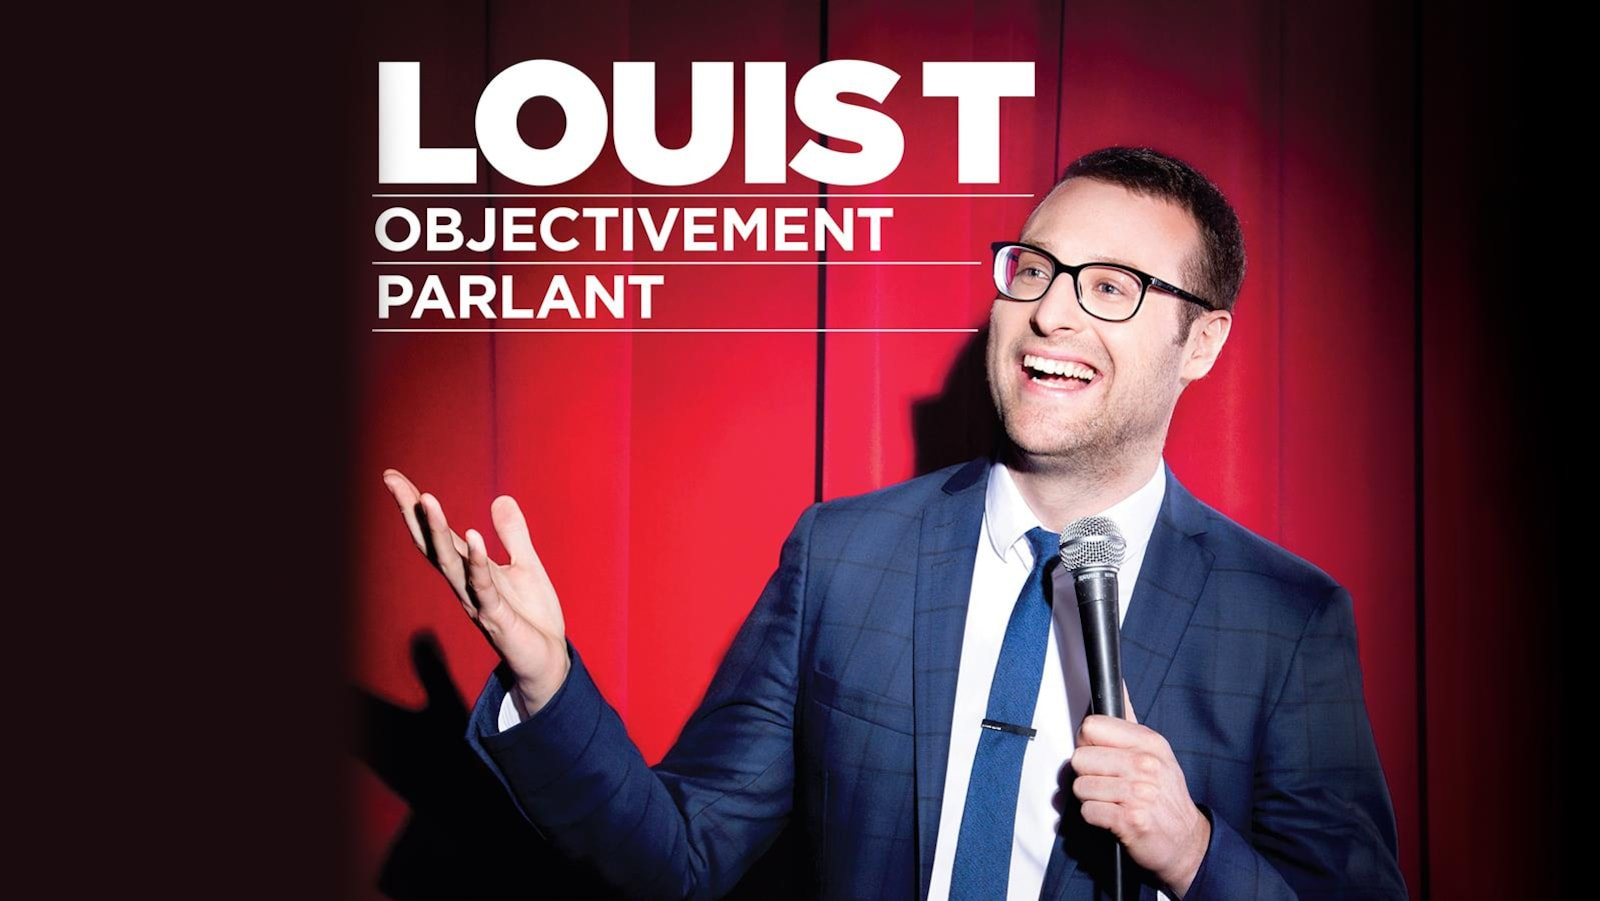 Affiche officielle du premier spectacle de Louis T : Objectivement parlant